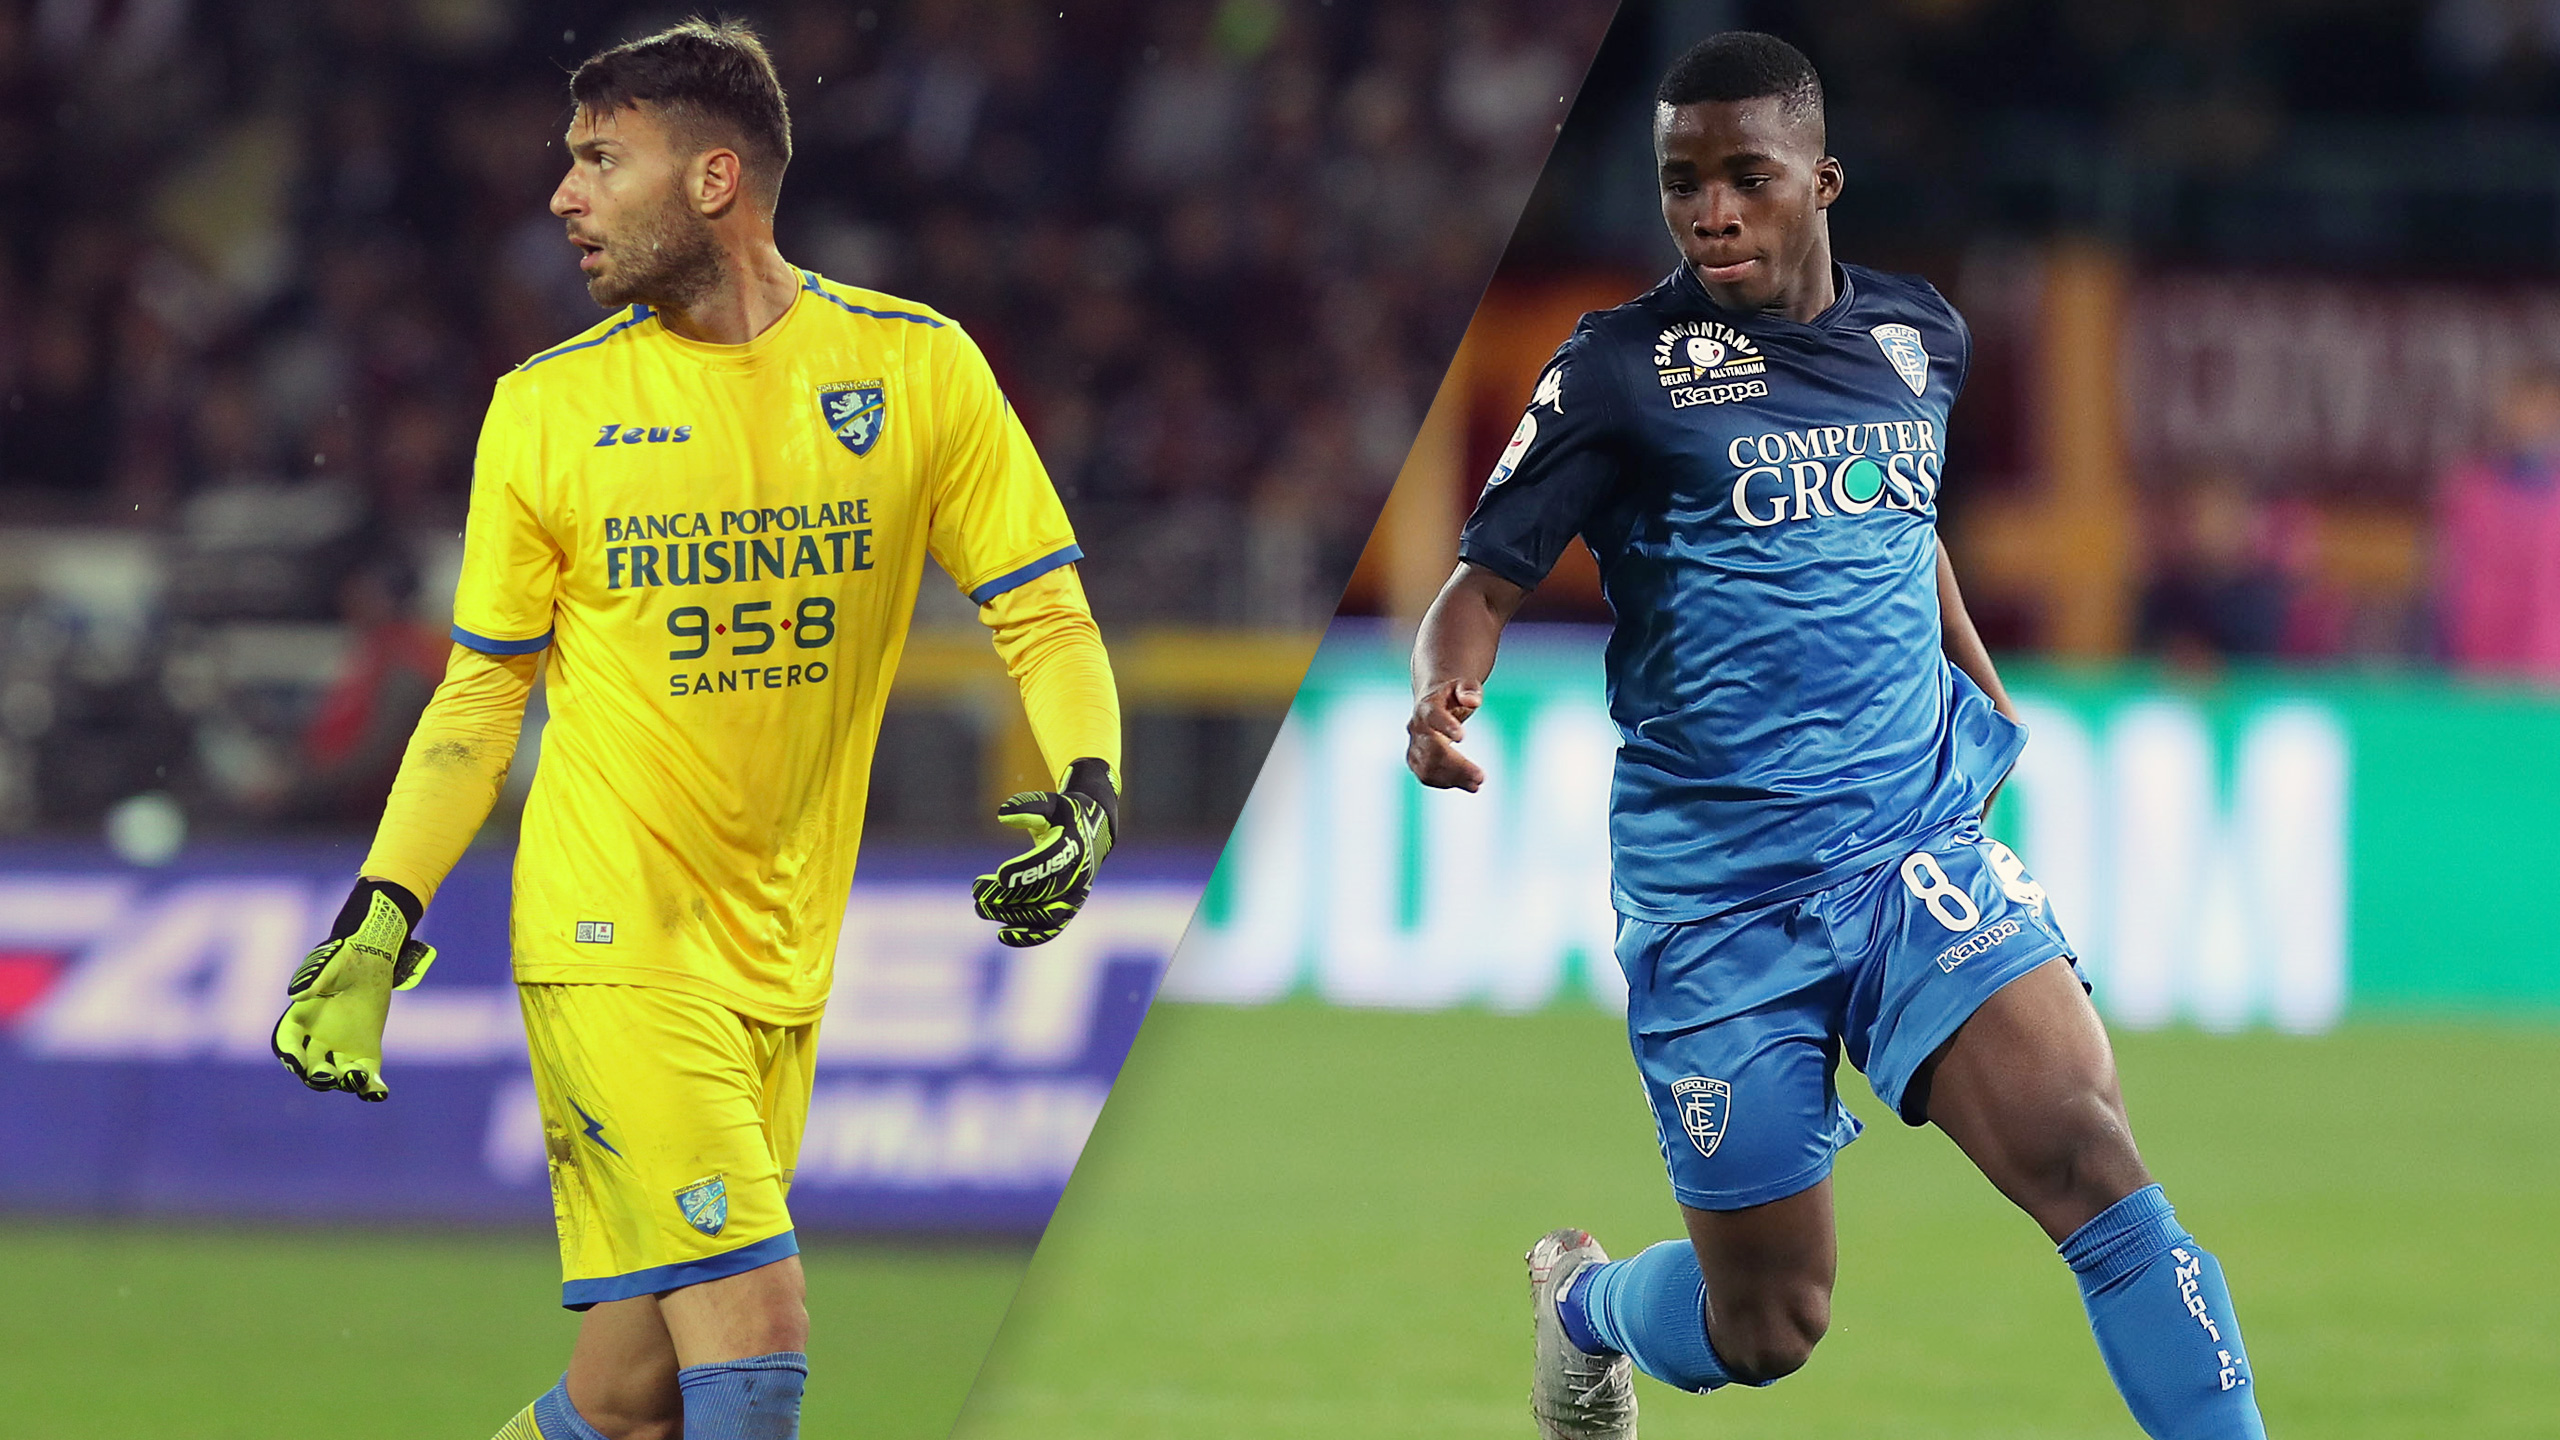 In Spanish - Frosinone vs. Empoli (Serie A) (re-air)